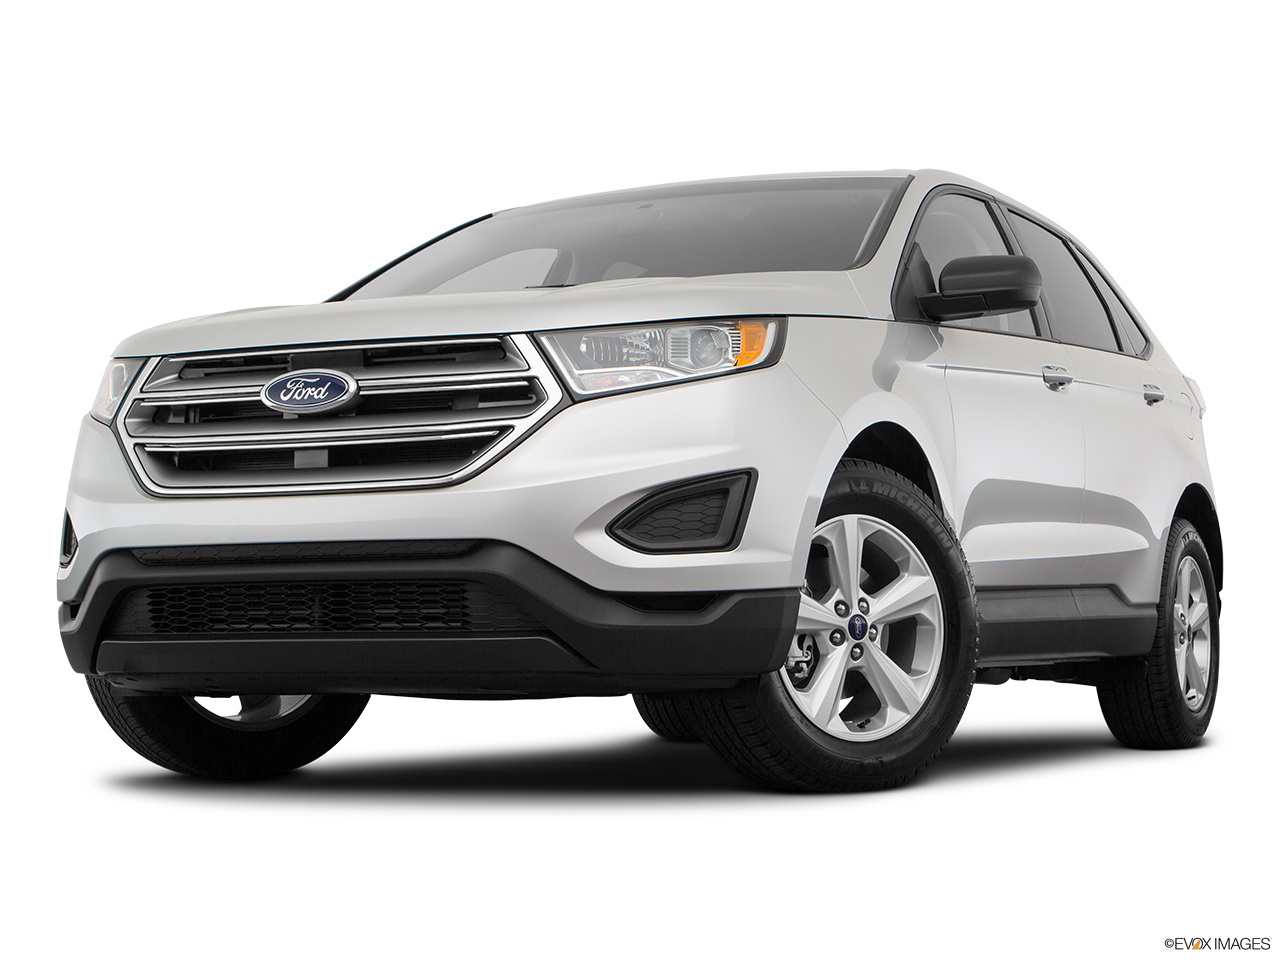 Ford Edge 2018, Saudi Arabia, Front angle view, low wide perspective.